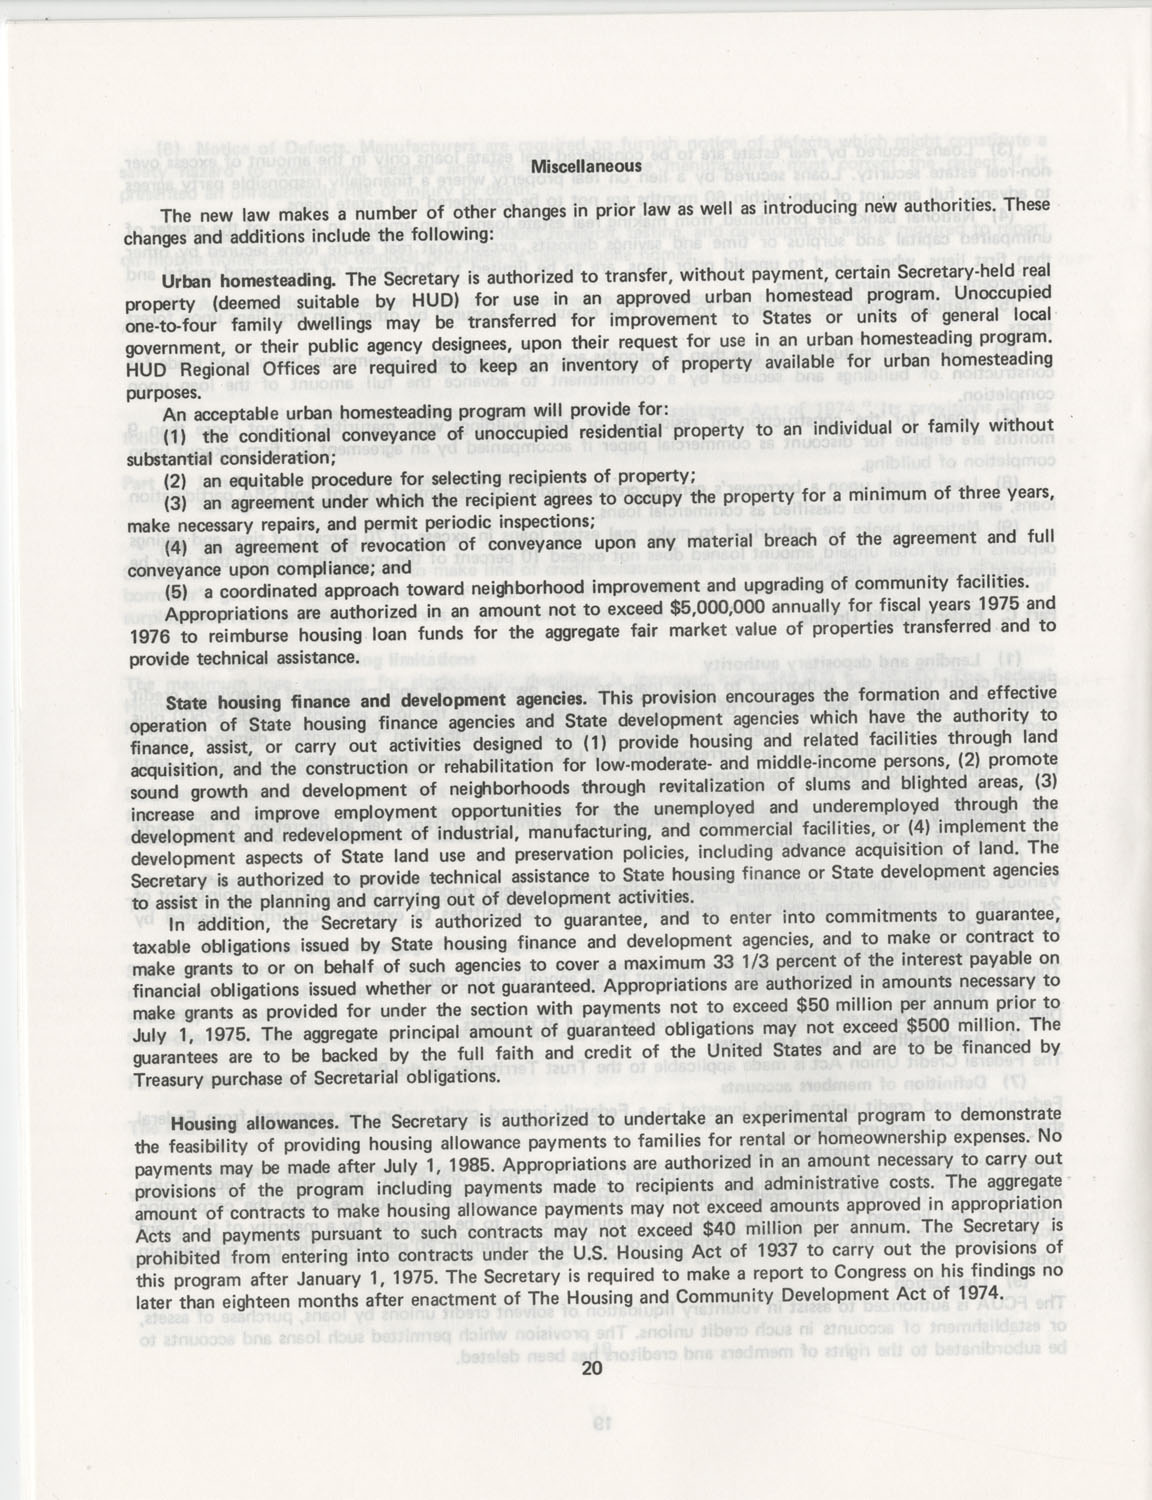 Summary of the Housing and Community Development Act of 1974, Page 20